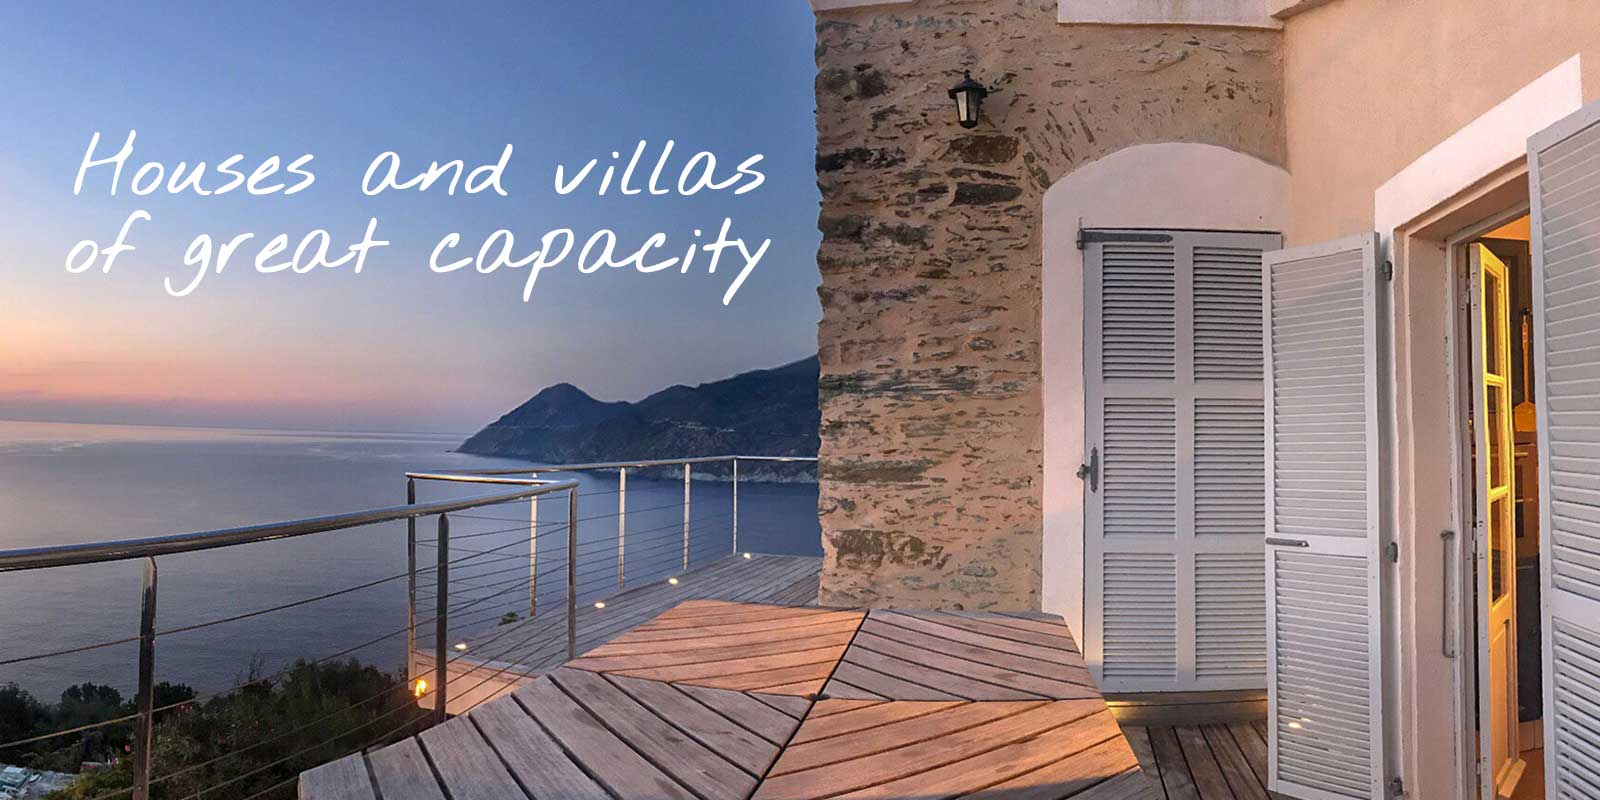 Holiday rental in Cap Corse that can accommodate more than 8 travelers